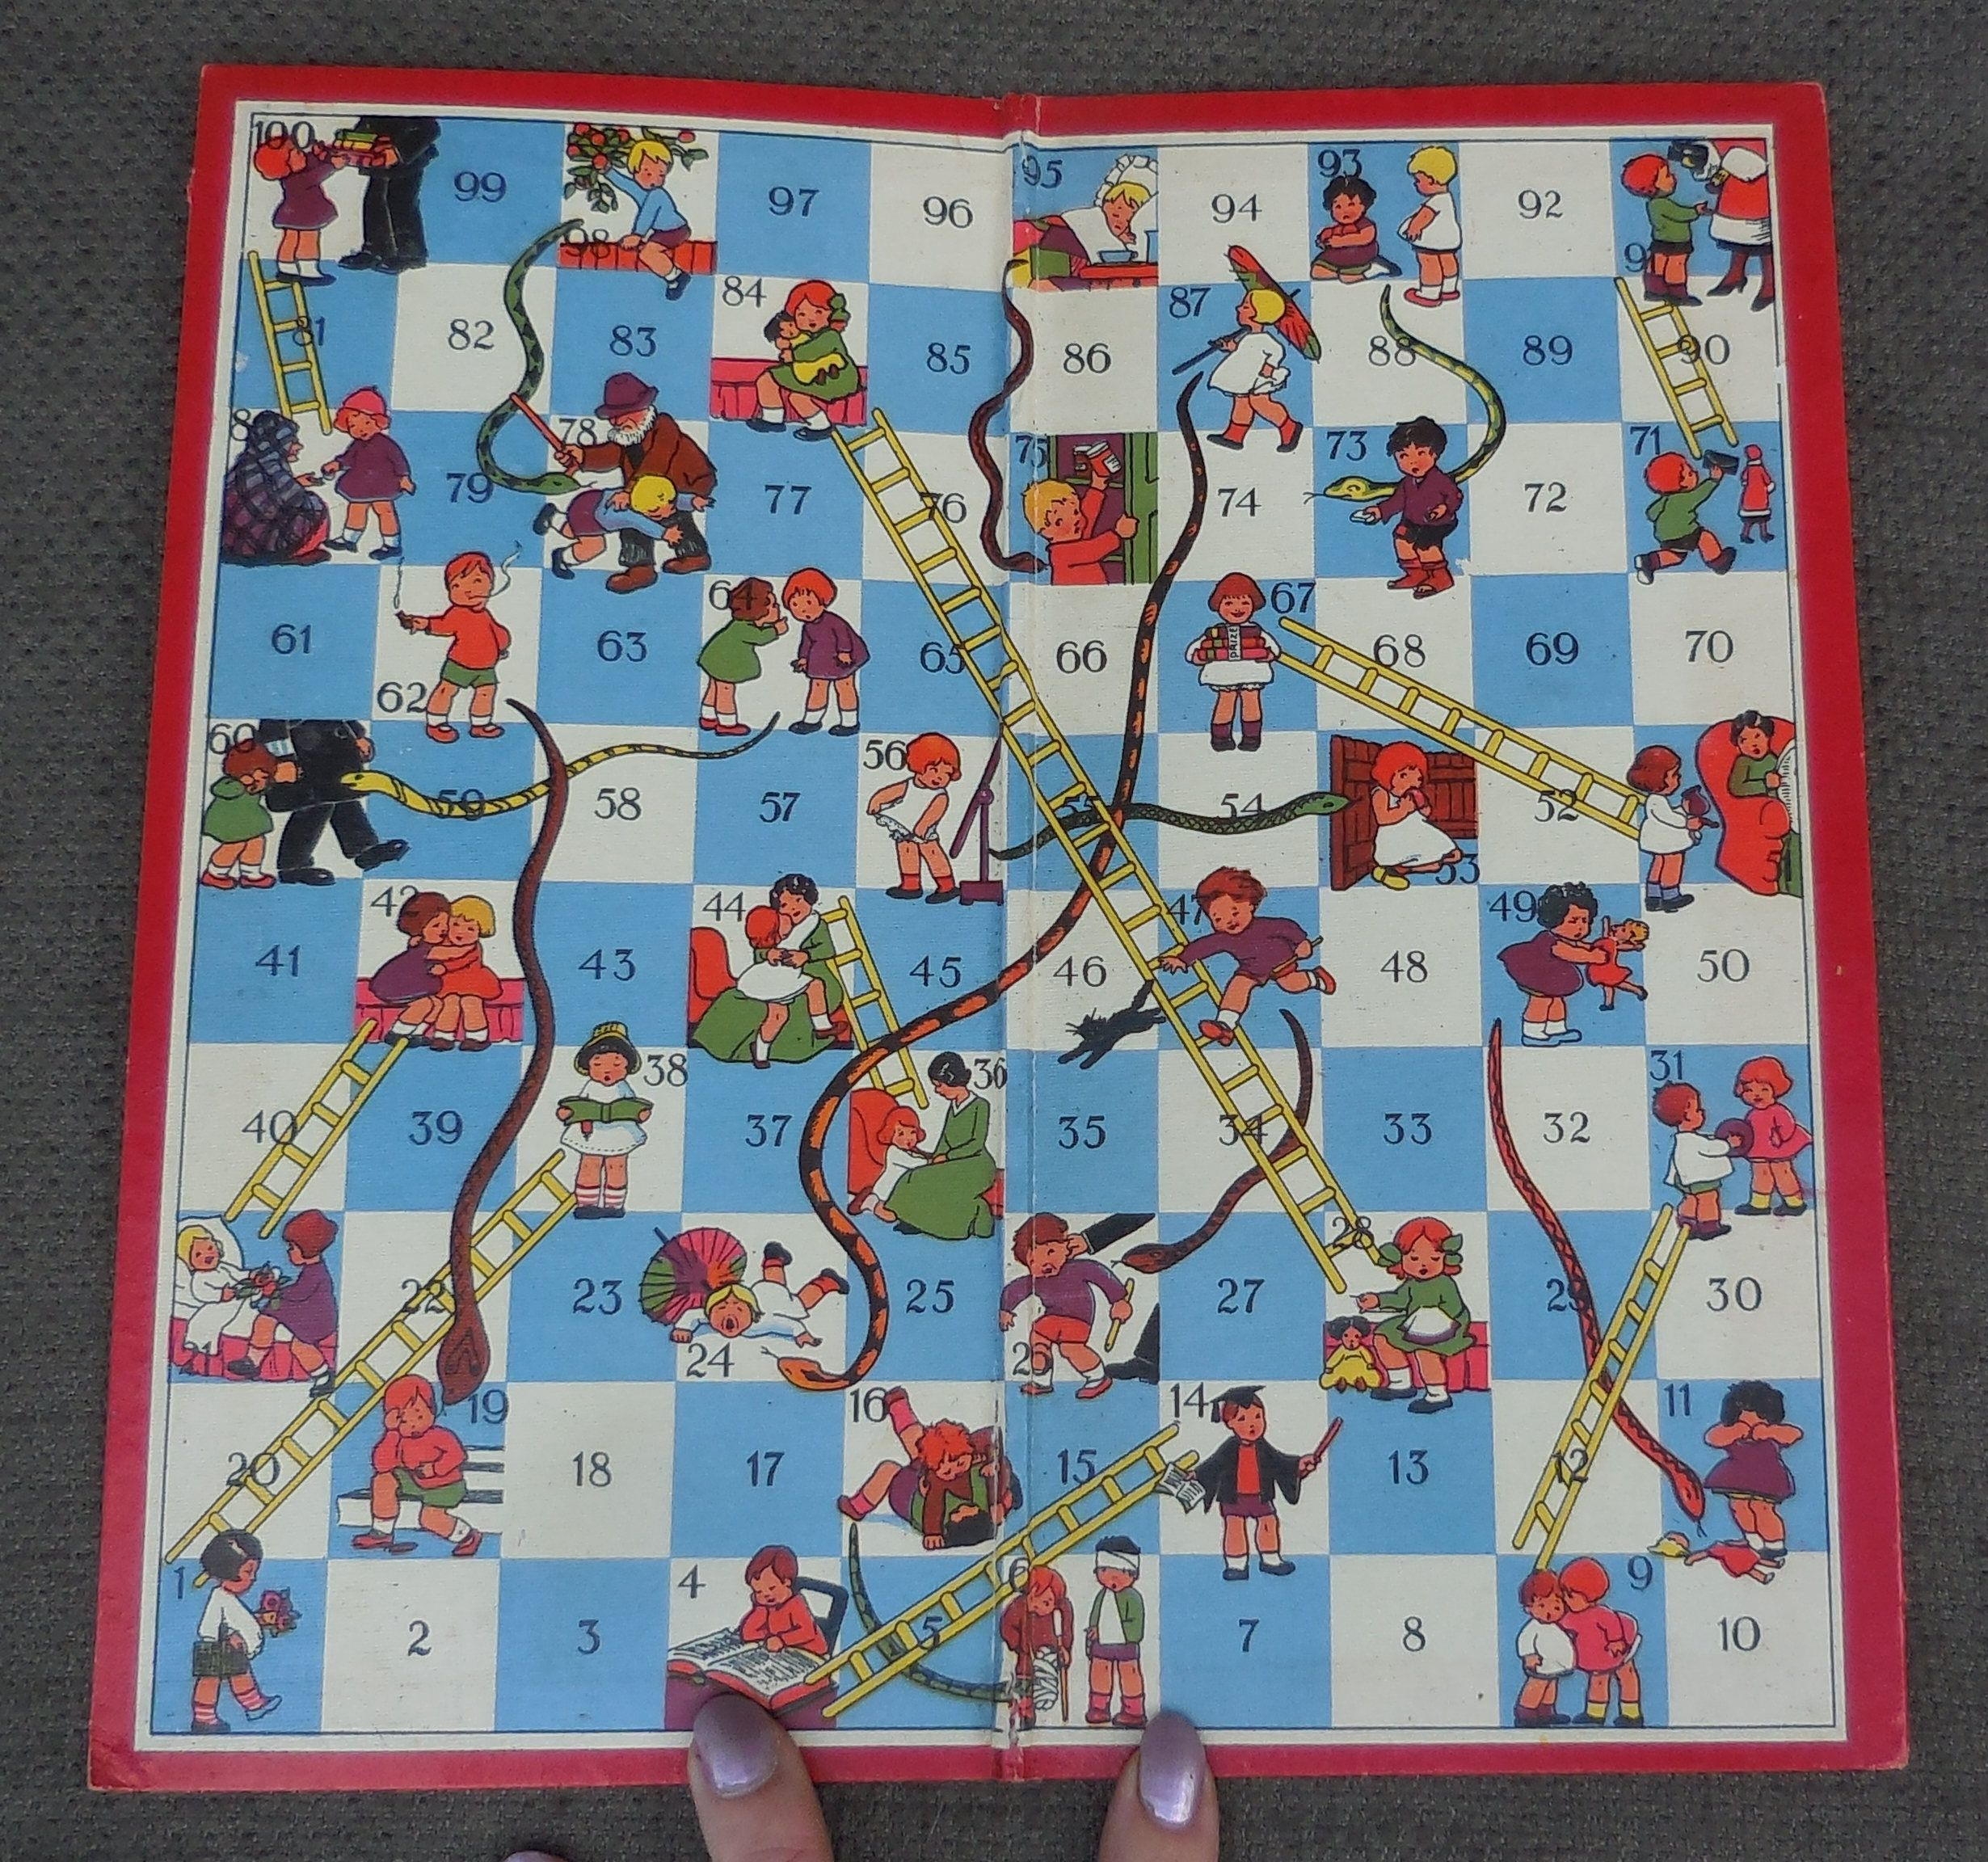 1930s snakes and ladders game board by spears